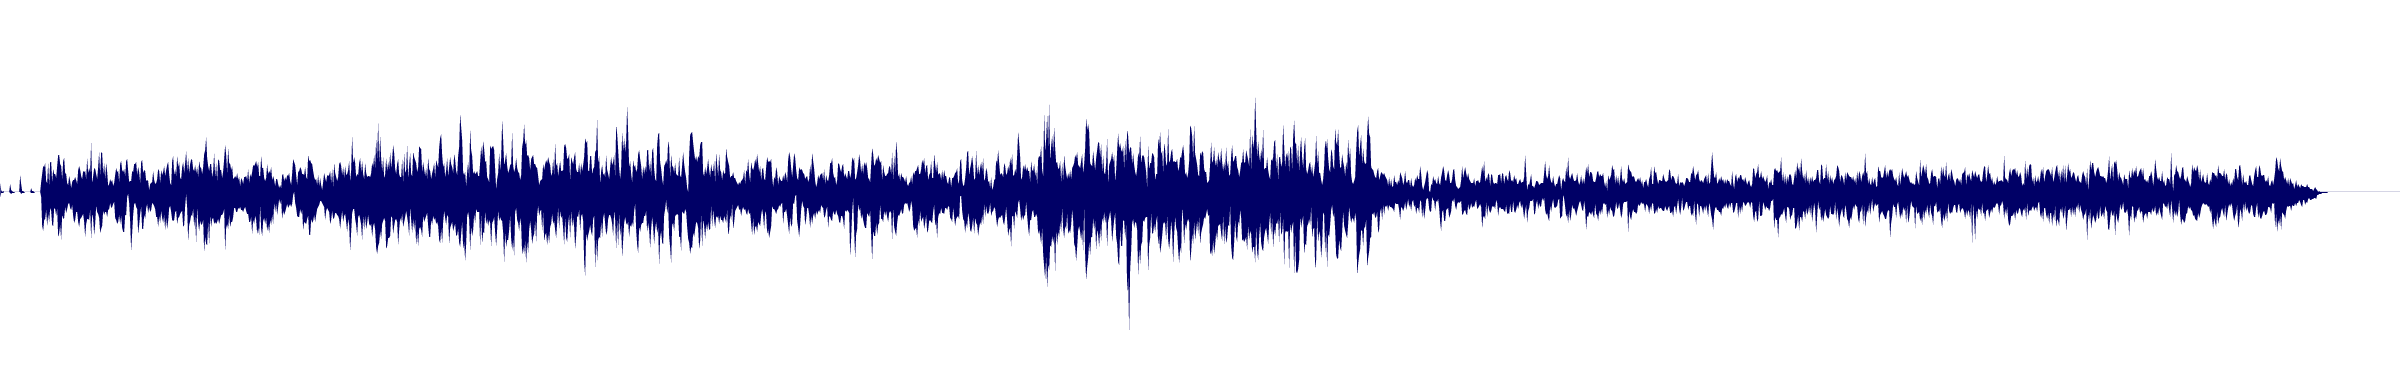 waveform of track #152487